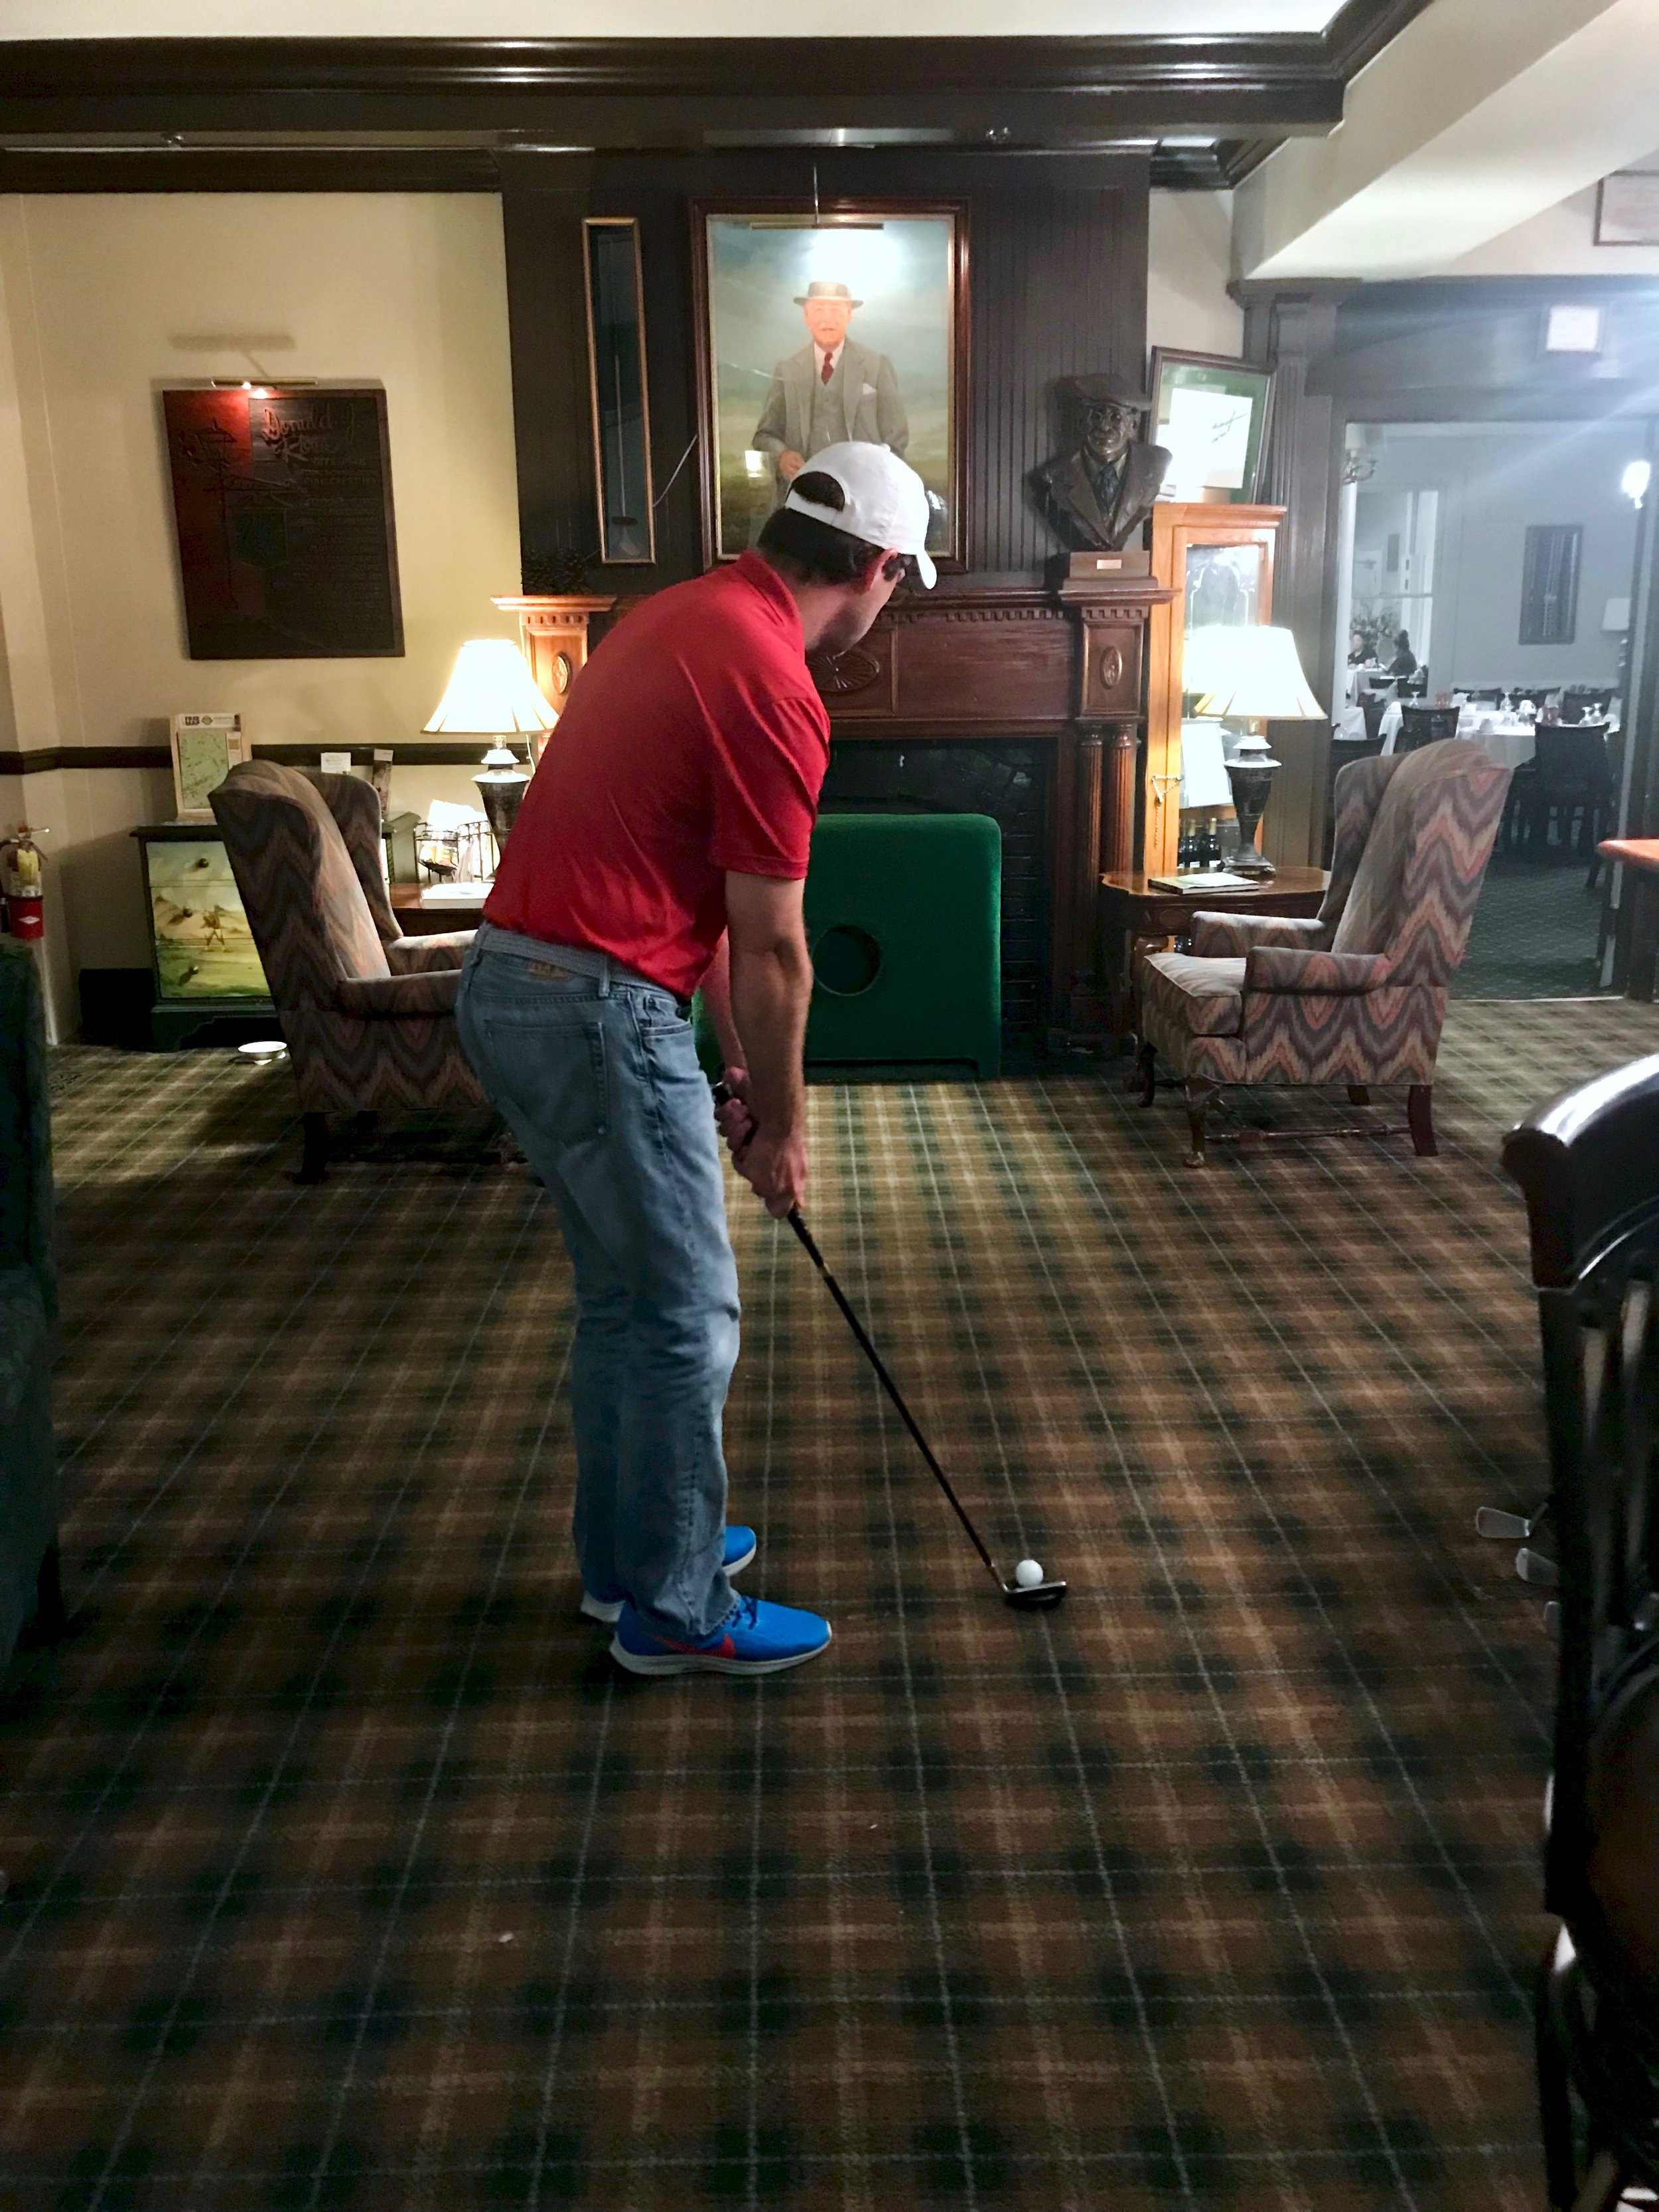 The author, in his blameless chipping stance, in the lobby of the Pine Crest Inn in Pinehurst, N.C.